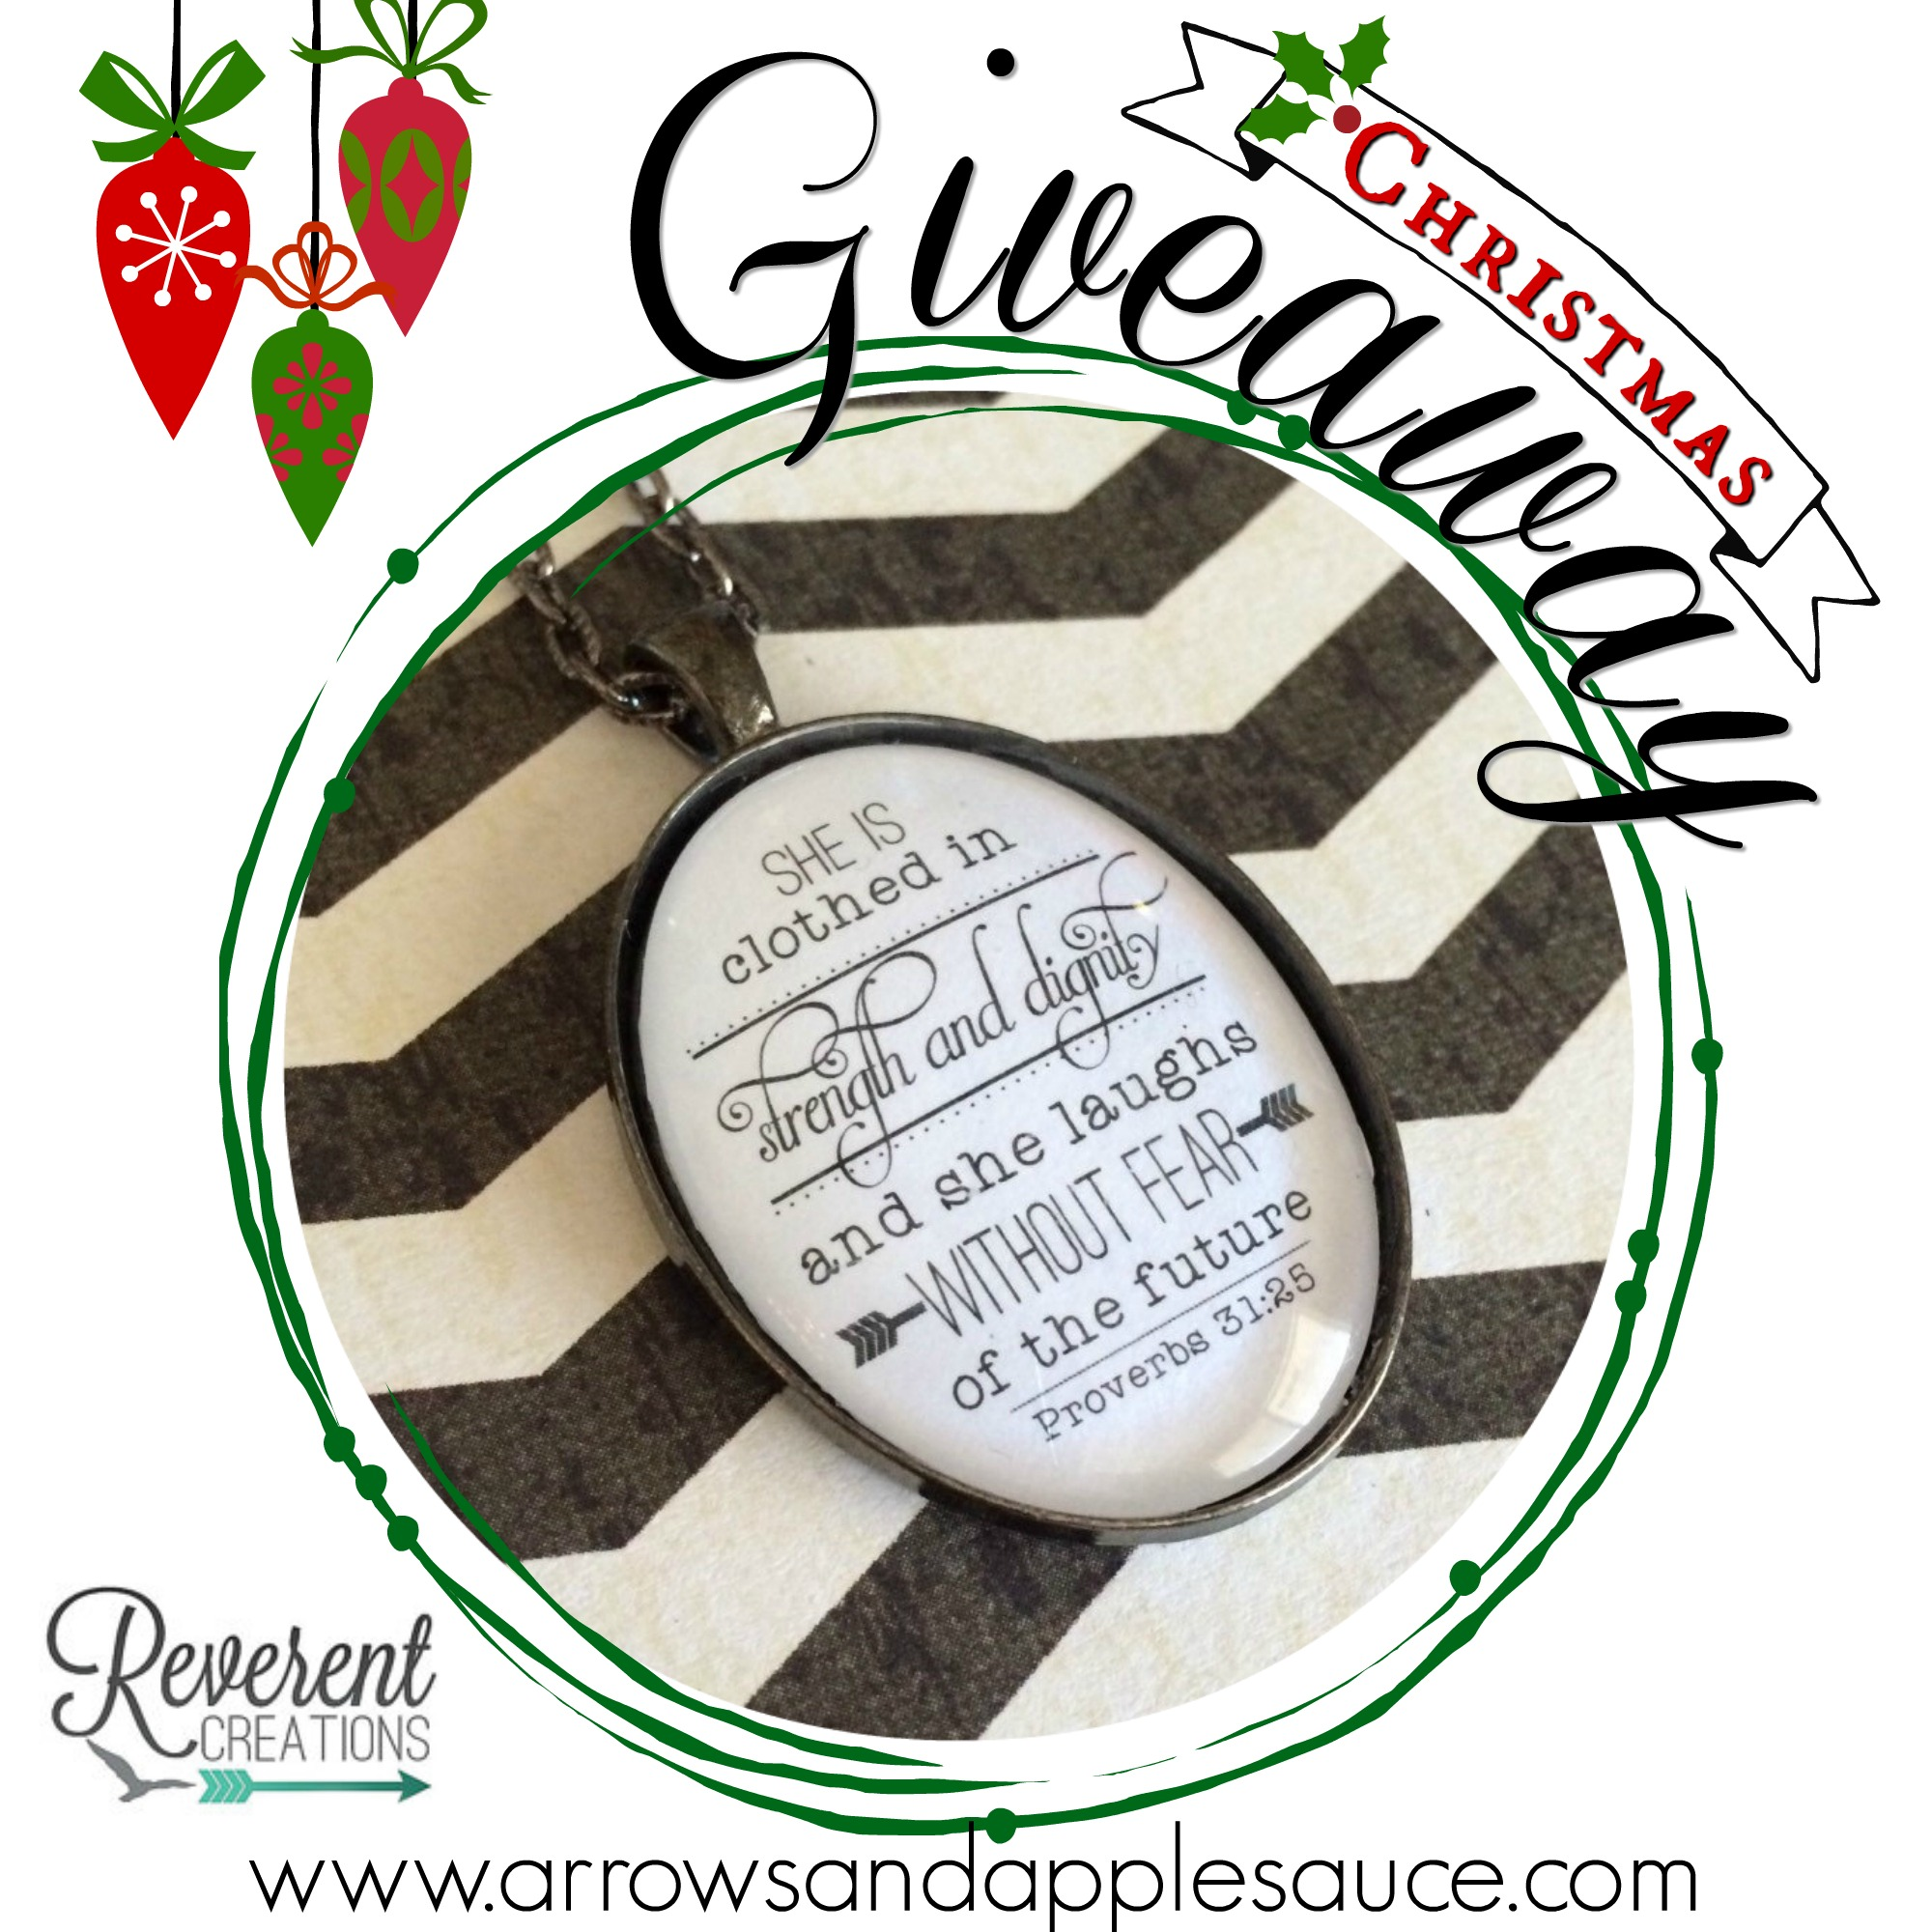 Hosting my first giveaway to celebrate Christmas and my new blog design. Come celebrate with me and enter to win a beautiful necklace from Reverent Creations!